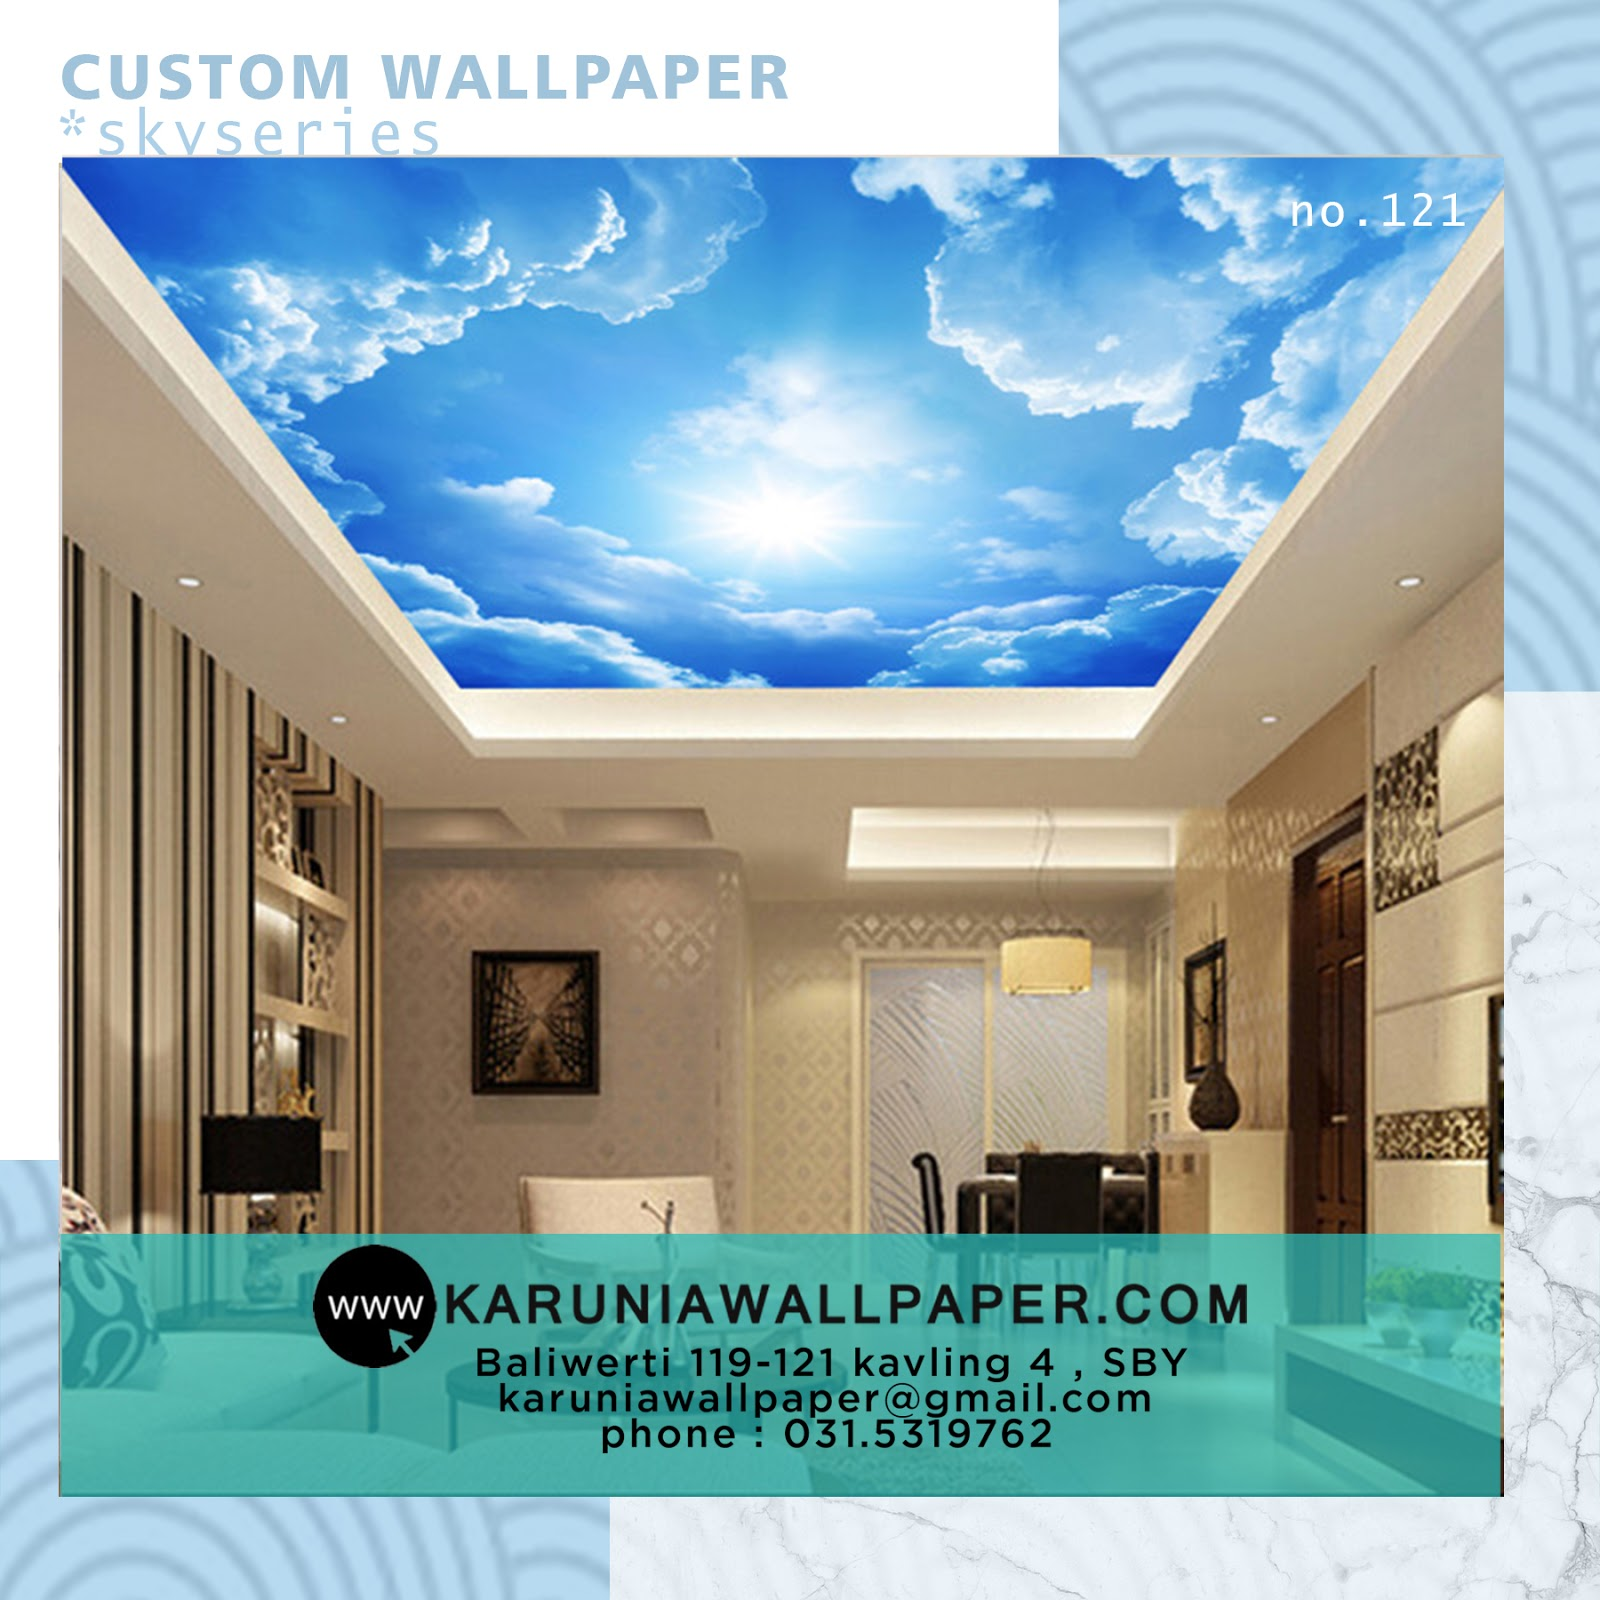 jual wallpaper custom unik surabaya